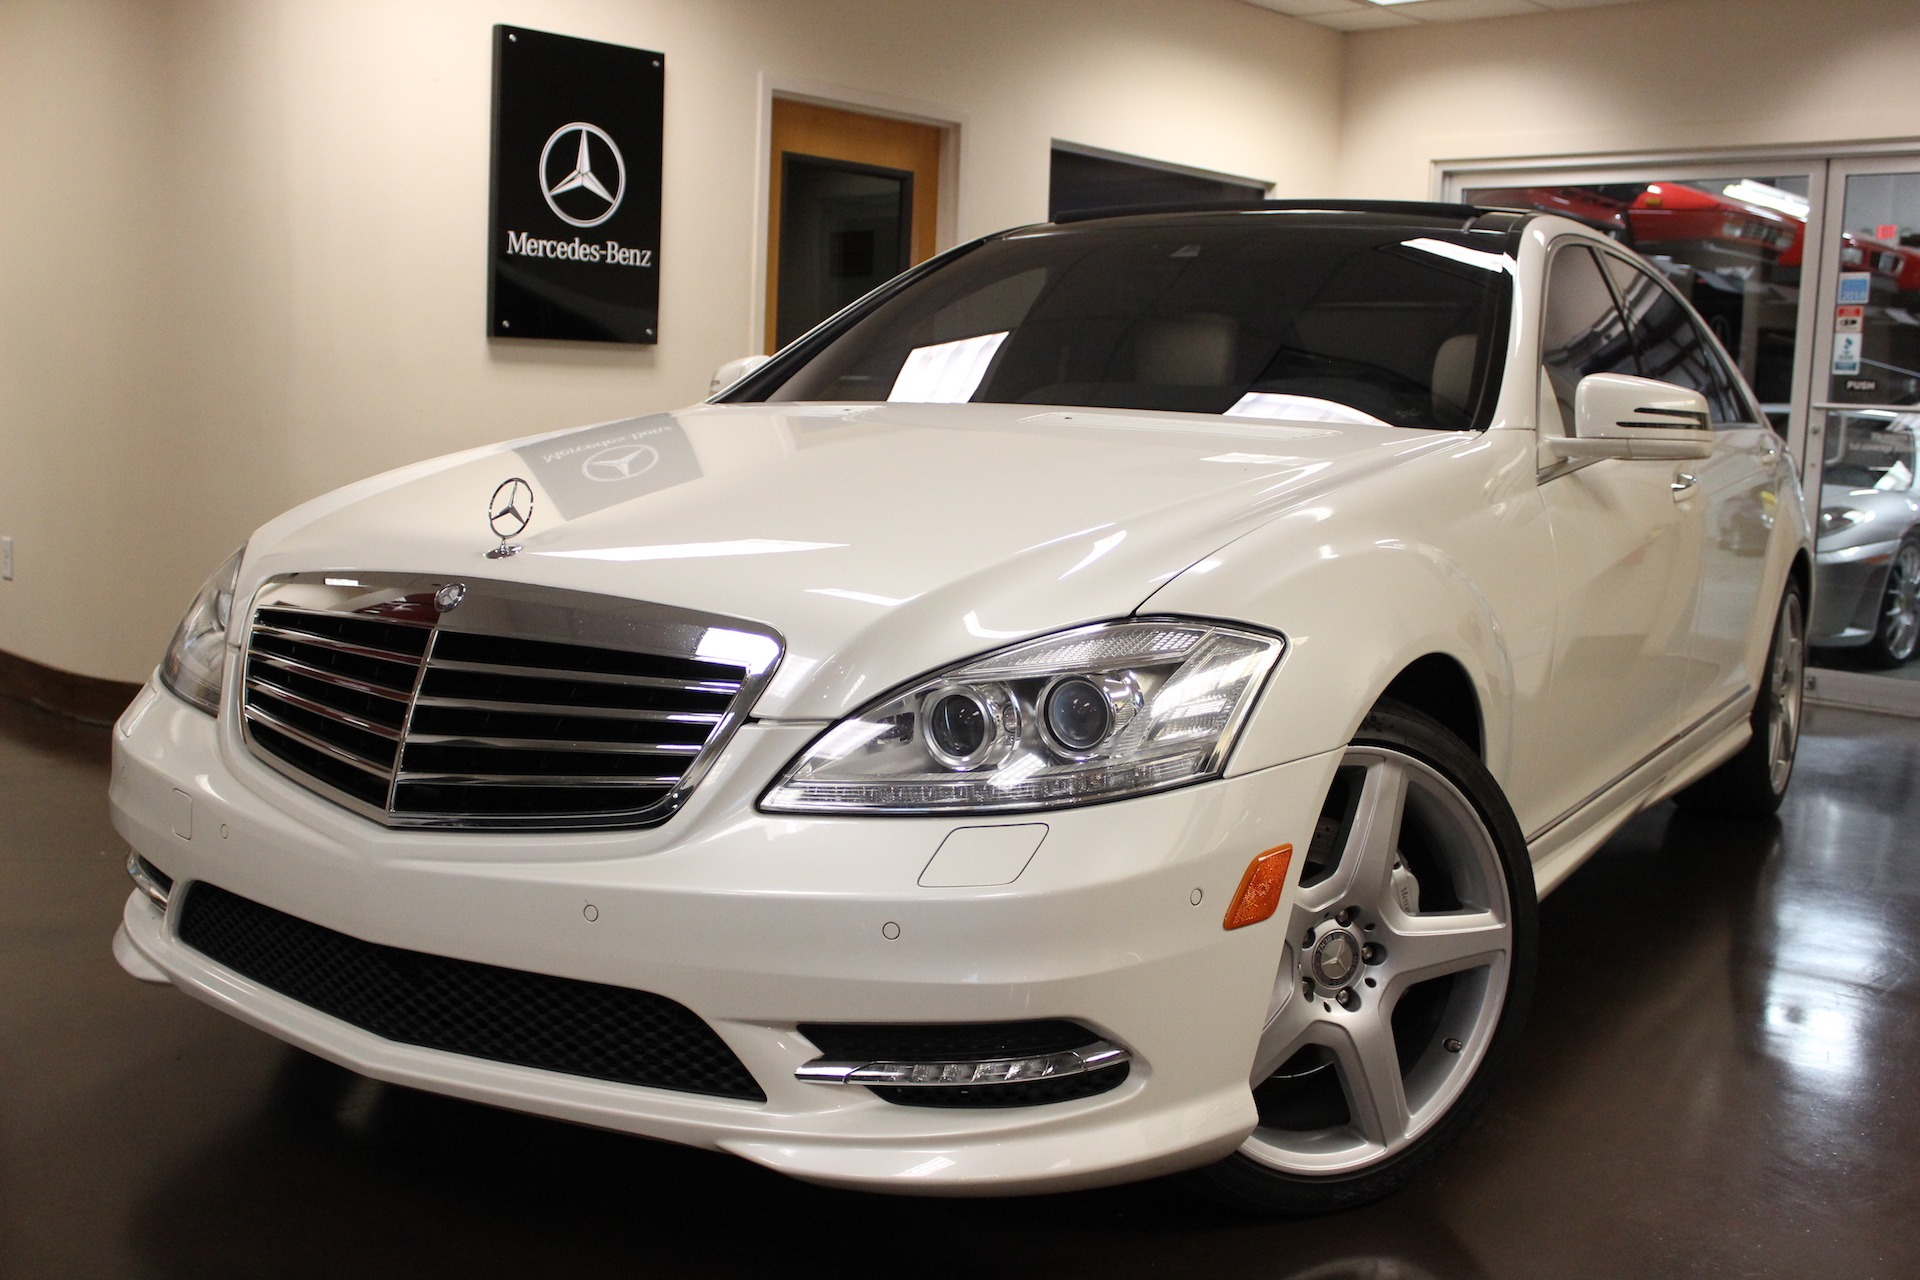 used 2013 mercedes benz s class stock p4140a ultra luxury car from merlin auto group. Black Bedroom Furniture Sets. Home Design Ideas